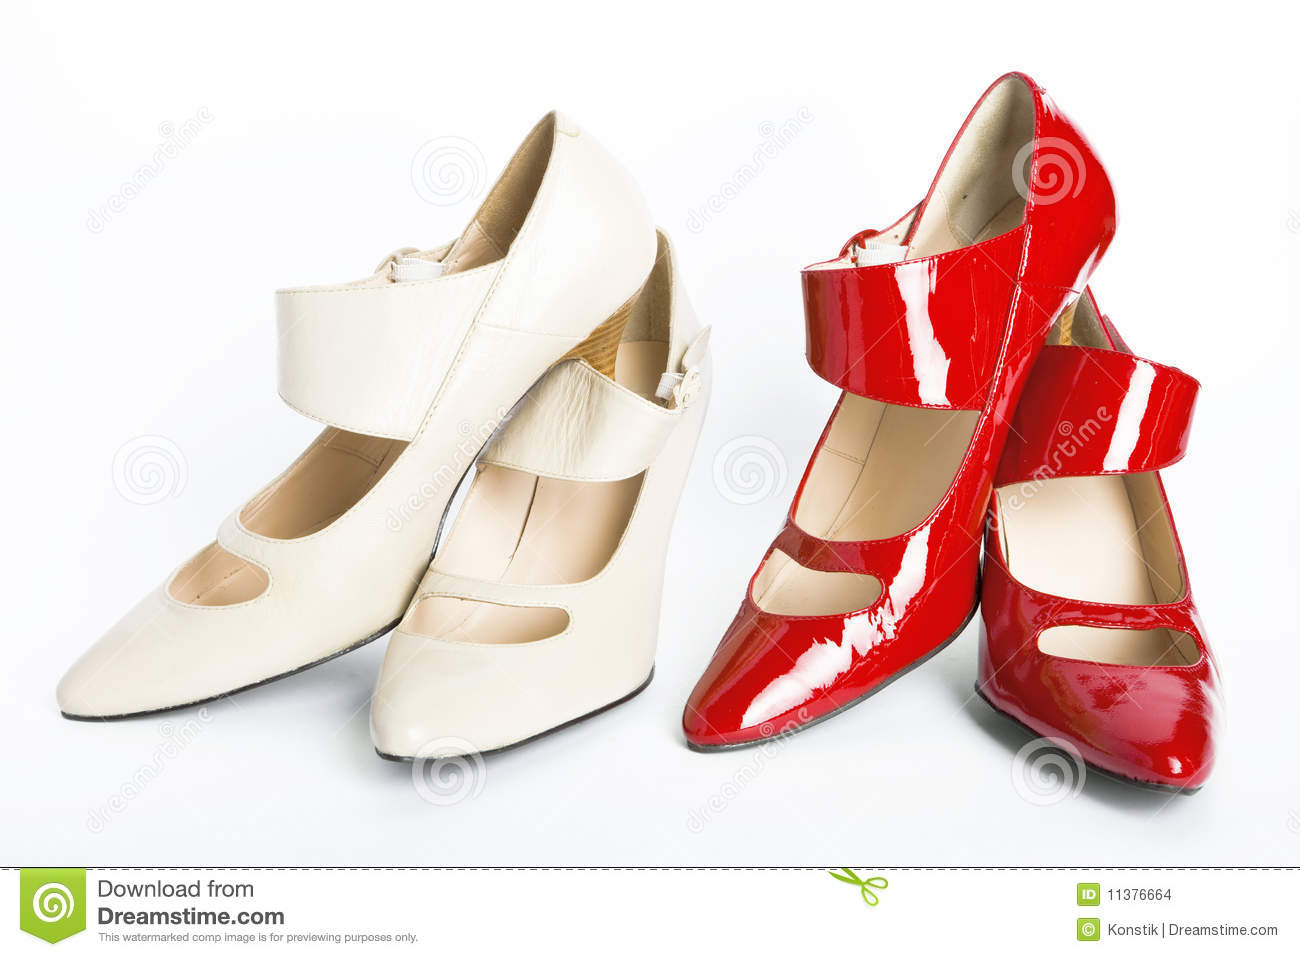 which is correct 2 pair or 2 pairs of shoes